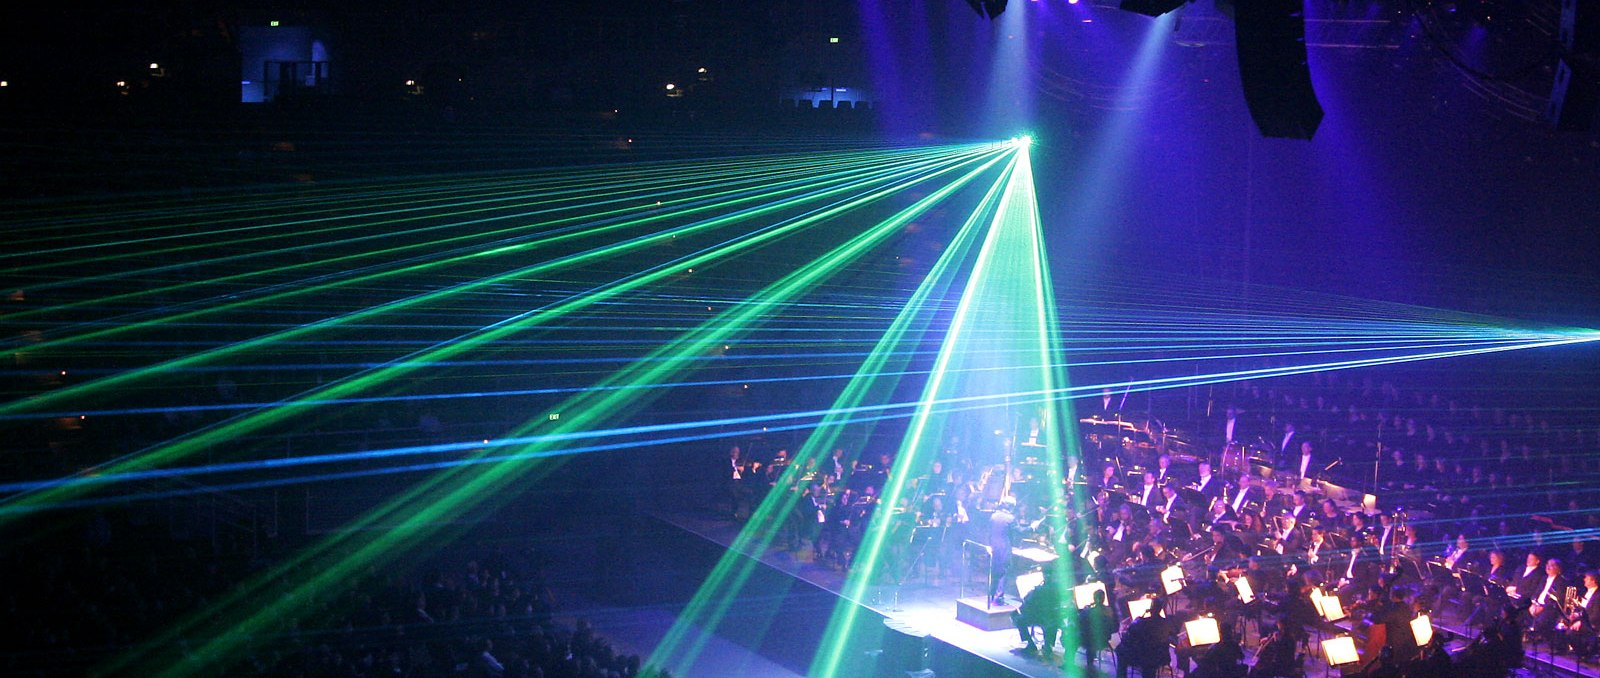 Classical_spectacular_laser_effects